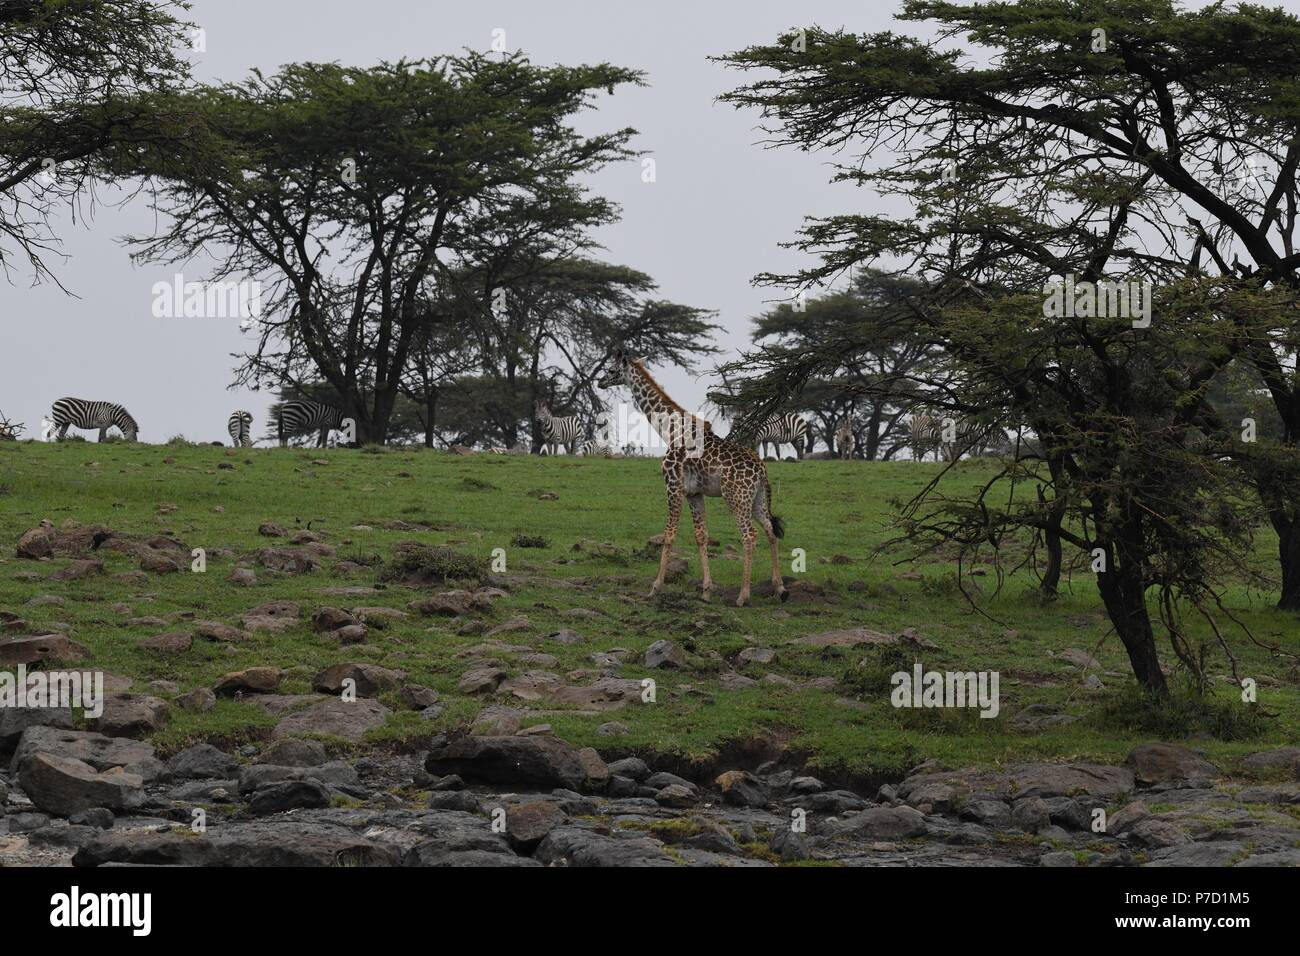 The Maasai giraffe (Giraffa camelopardalis tippelskirchii), also called Kilimanjaro giraffe. Picture taken in the valley at Mahali Mzuri, Maasai Mara. Stock Photo